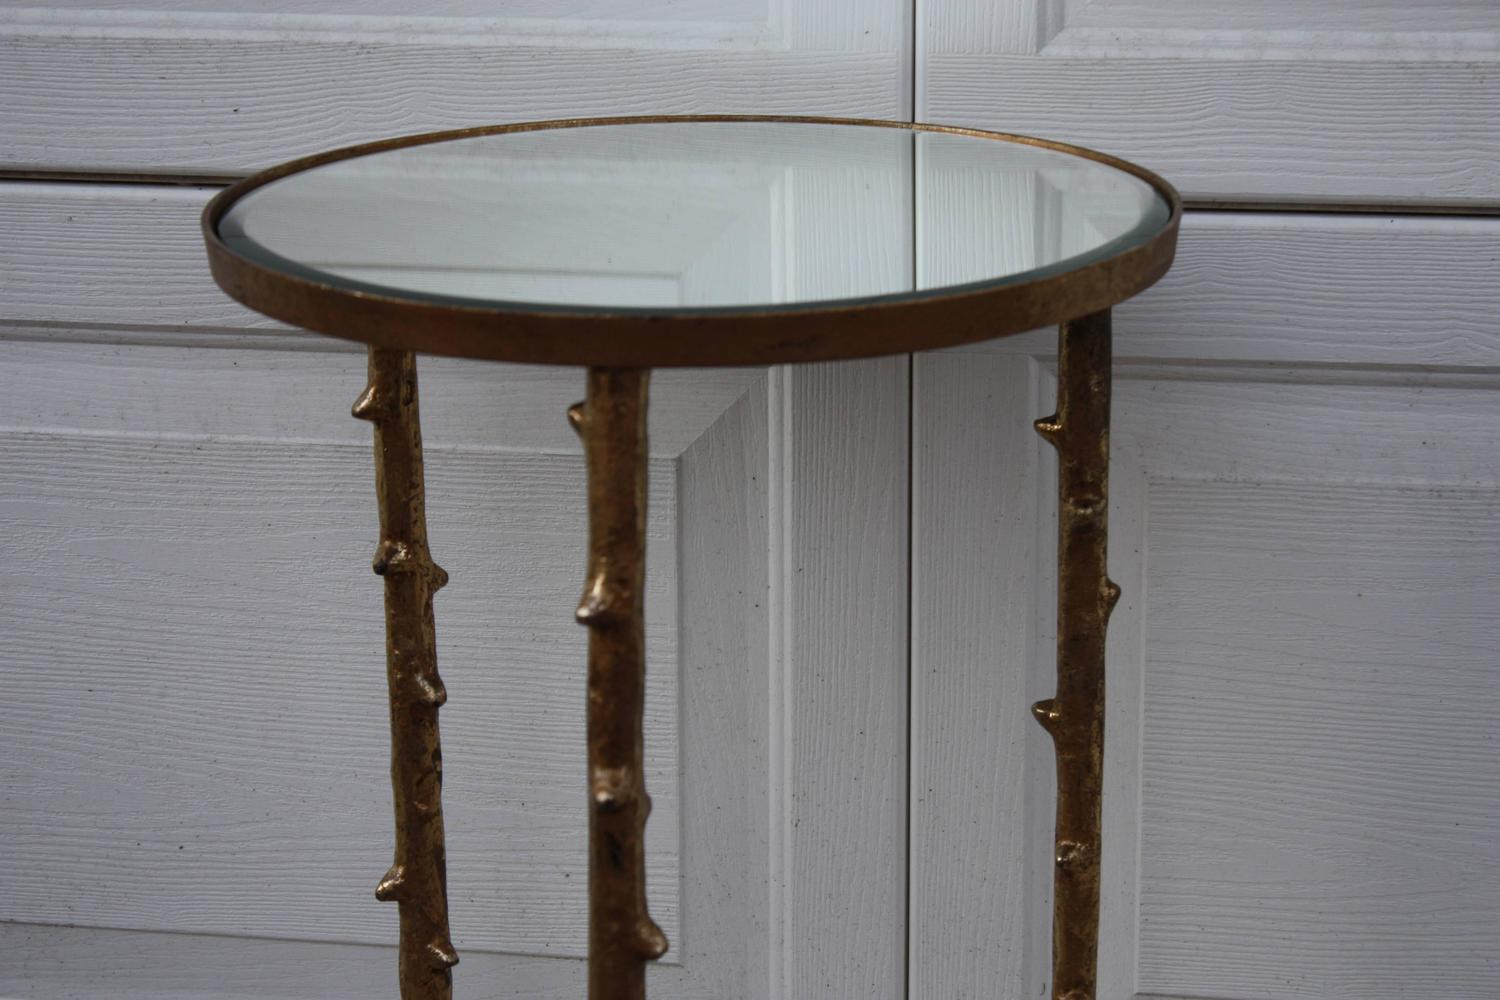 1980s French Gilt Faux Twig Mirrored Side Table Chairish : 1980s french gilt faux twig mirrored side table 4379aspectfitampwidth640ampheight640 from www.chairish.com size 640 x 640 jpeg 37kB